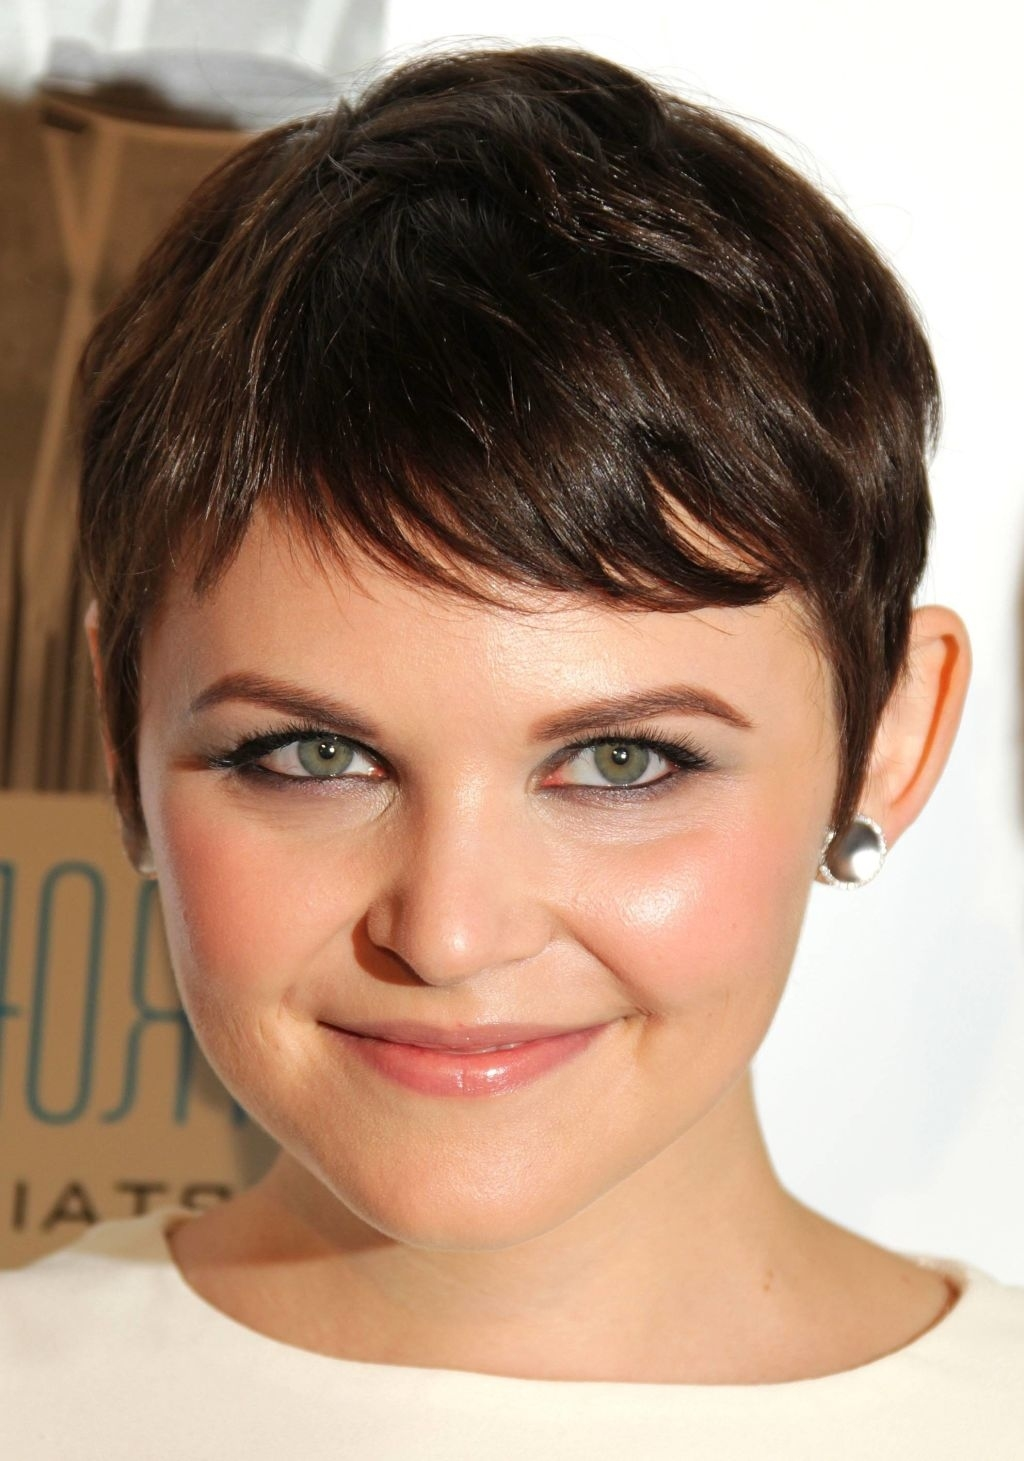 Haircuts For Very Round Faces   Hair Color Ideas And Styles For 2018 regarding Haircut For Very Round Face